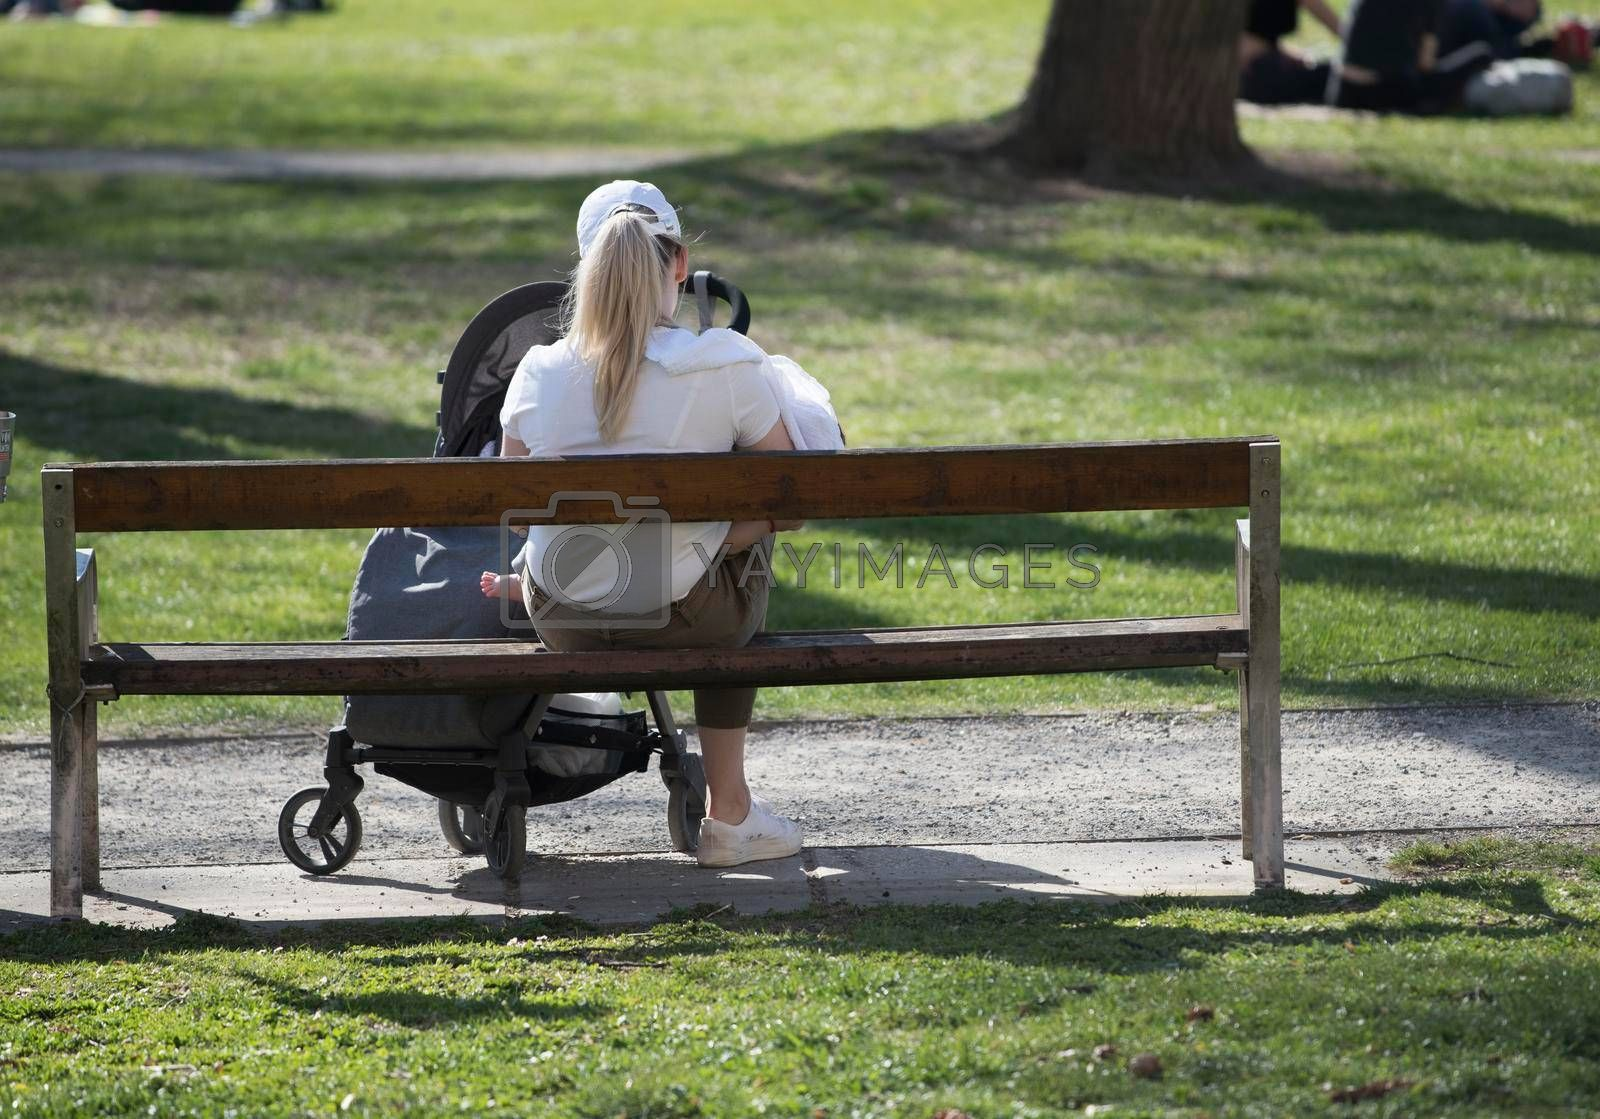 a mother with her child and baby stroller, maternity leave